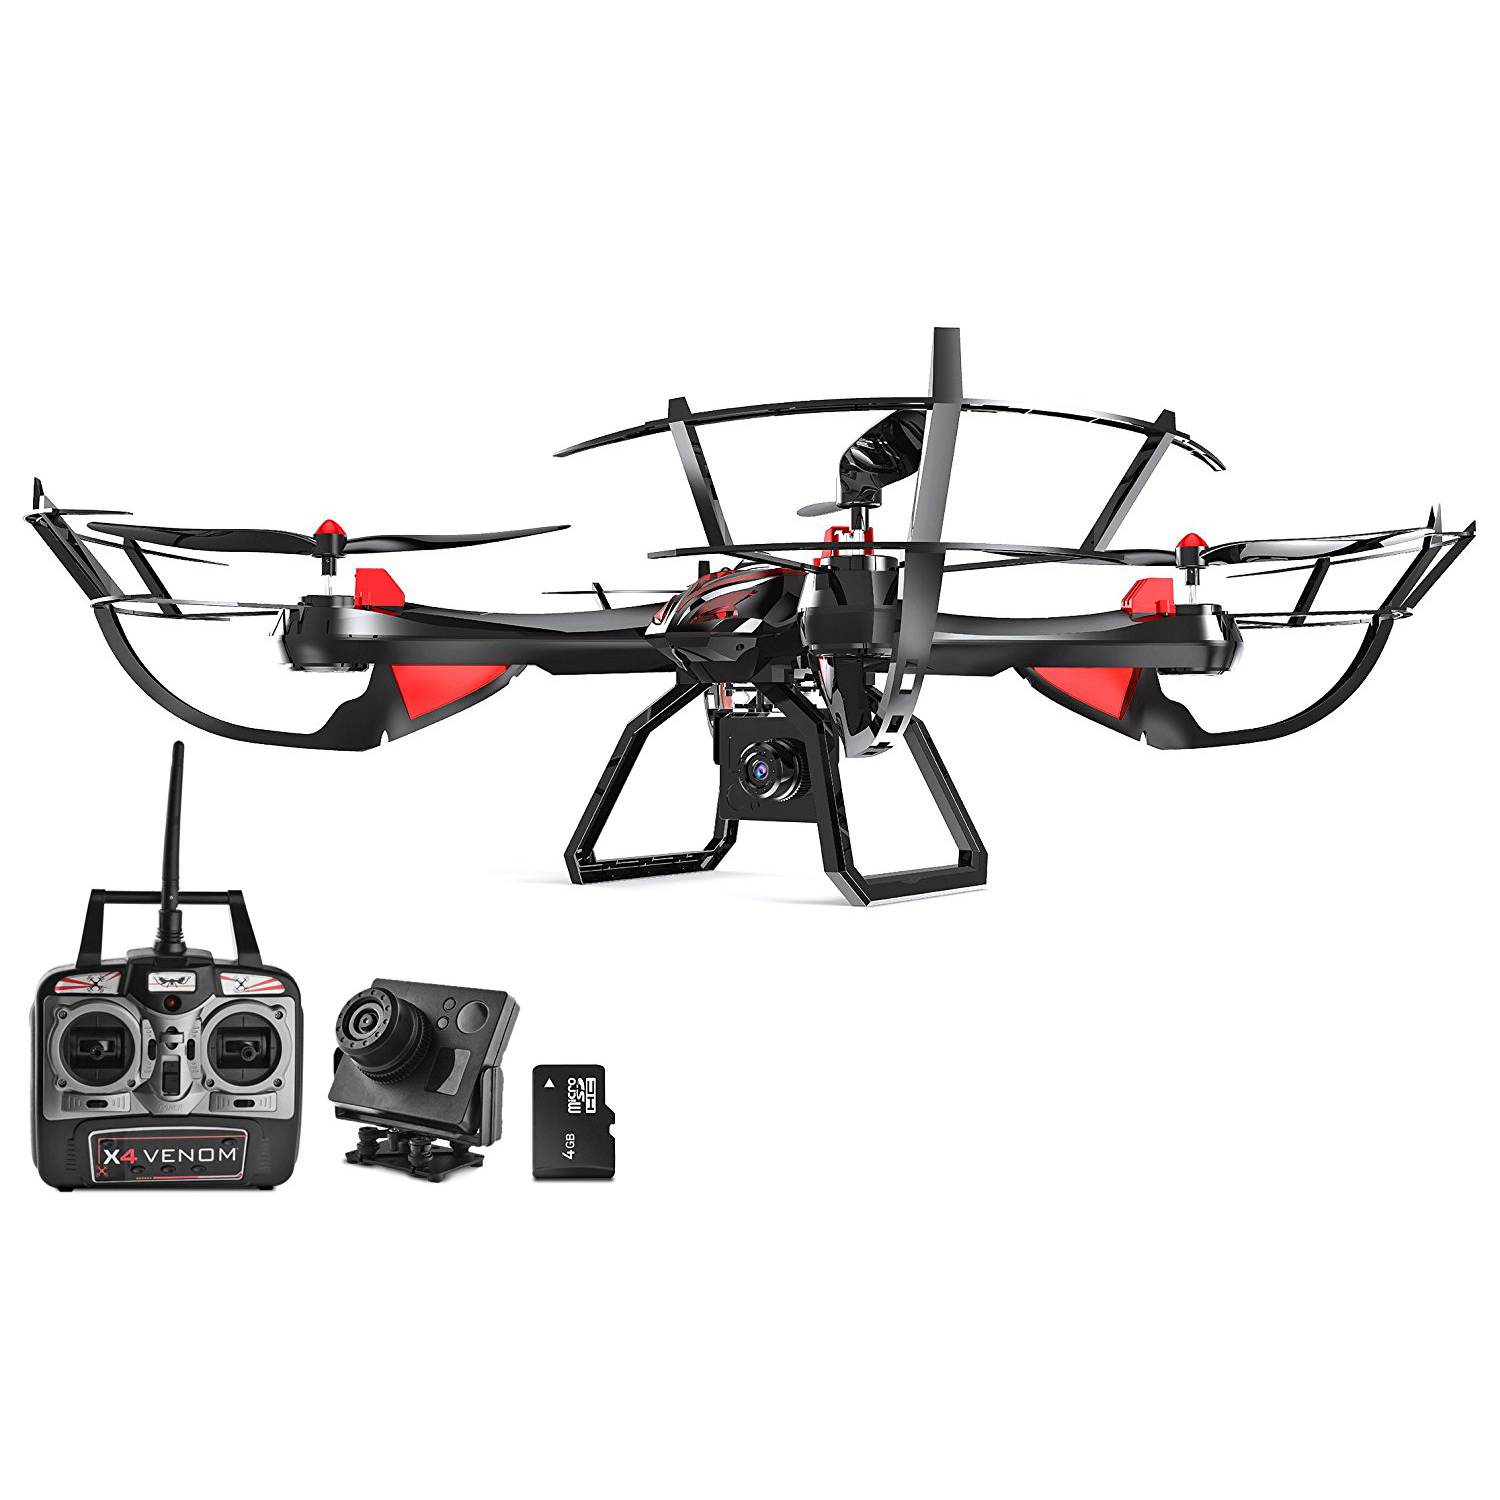 dynamic aerial systems x4 venom 4ch 6 axis gyro rc remote control quadcopter drone with. Black Bedroom Furniture Sets. Home Design Ideas